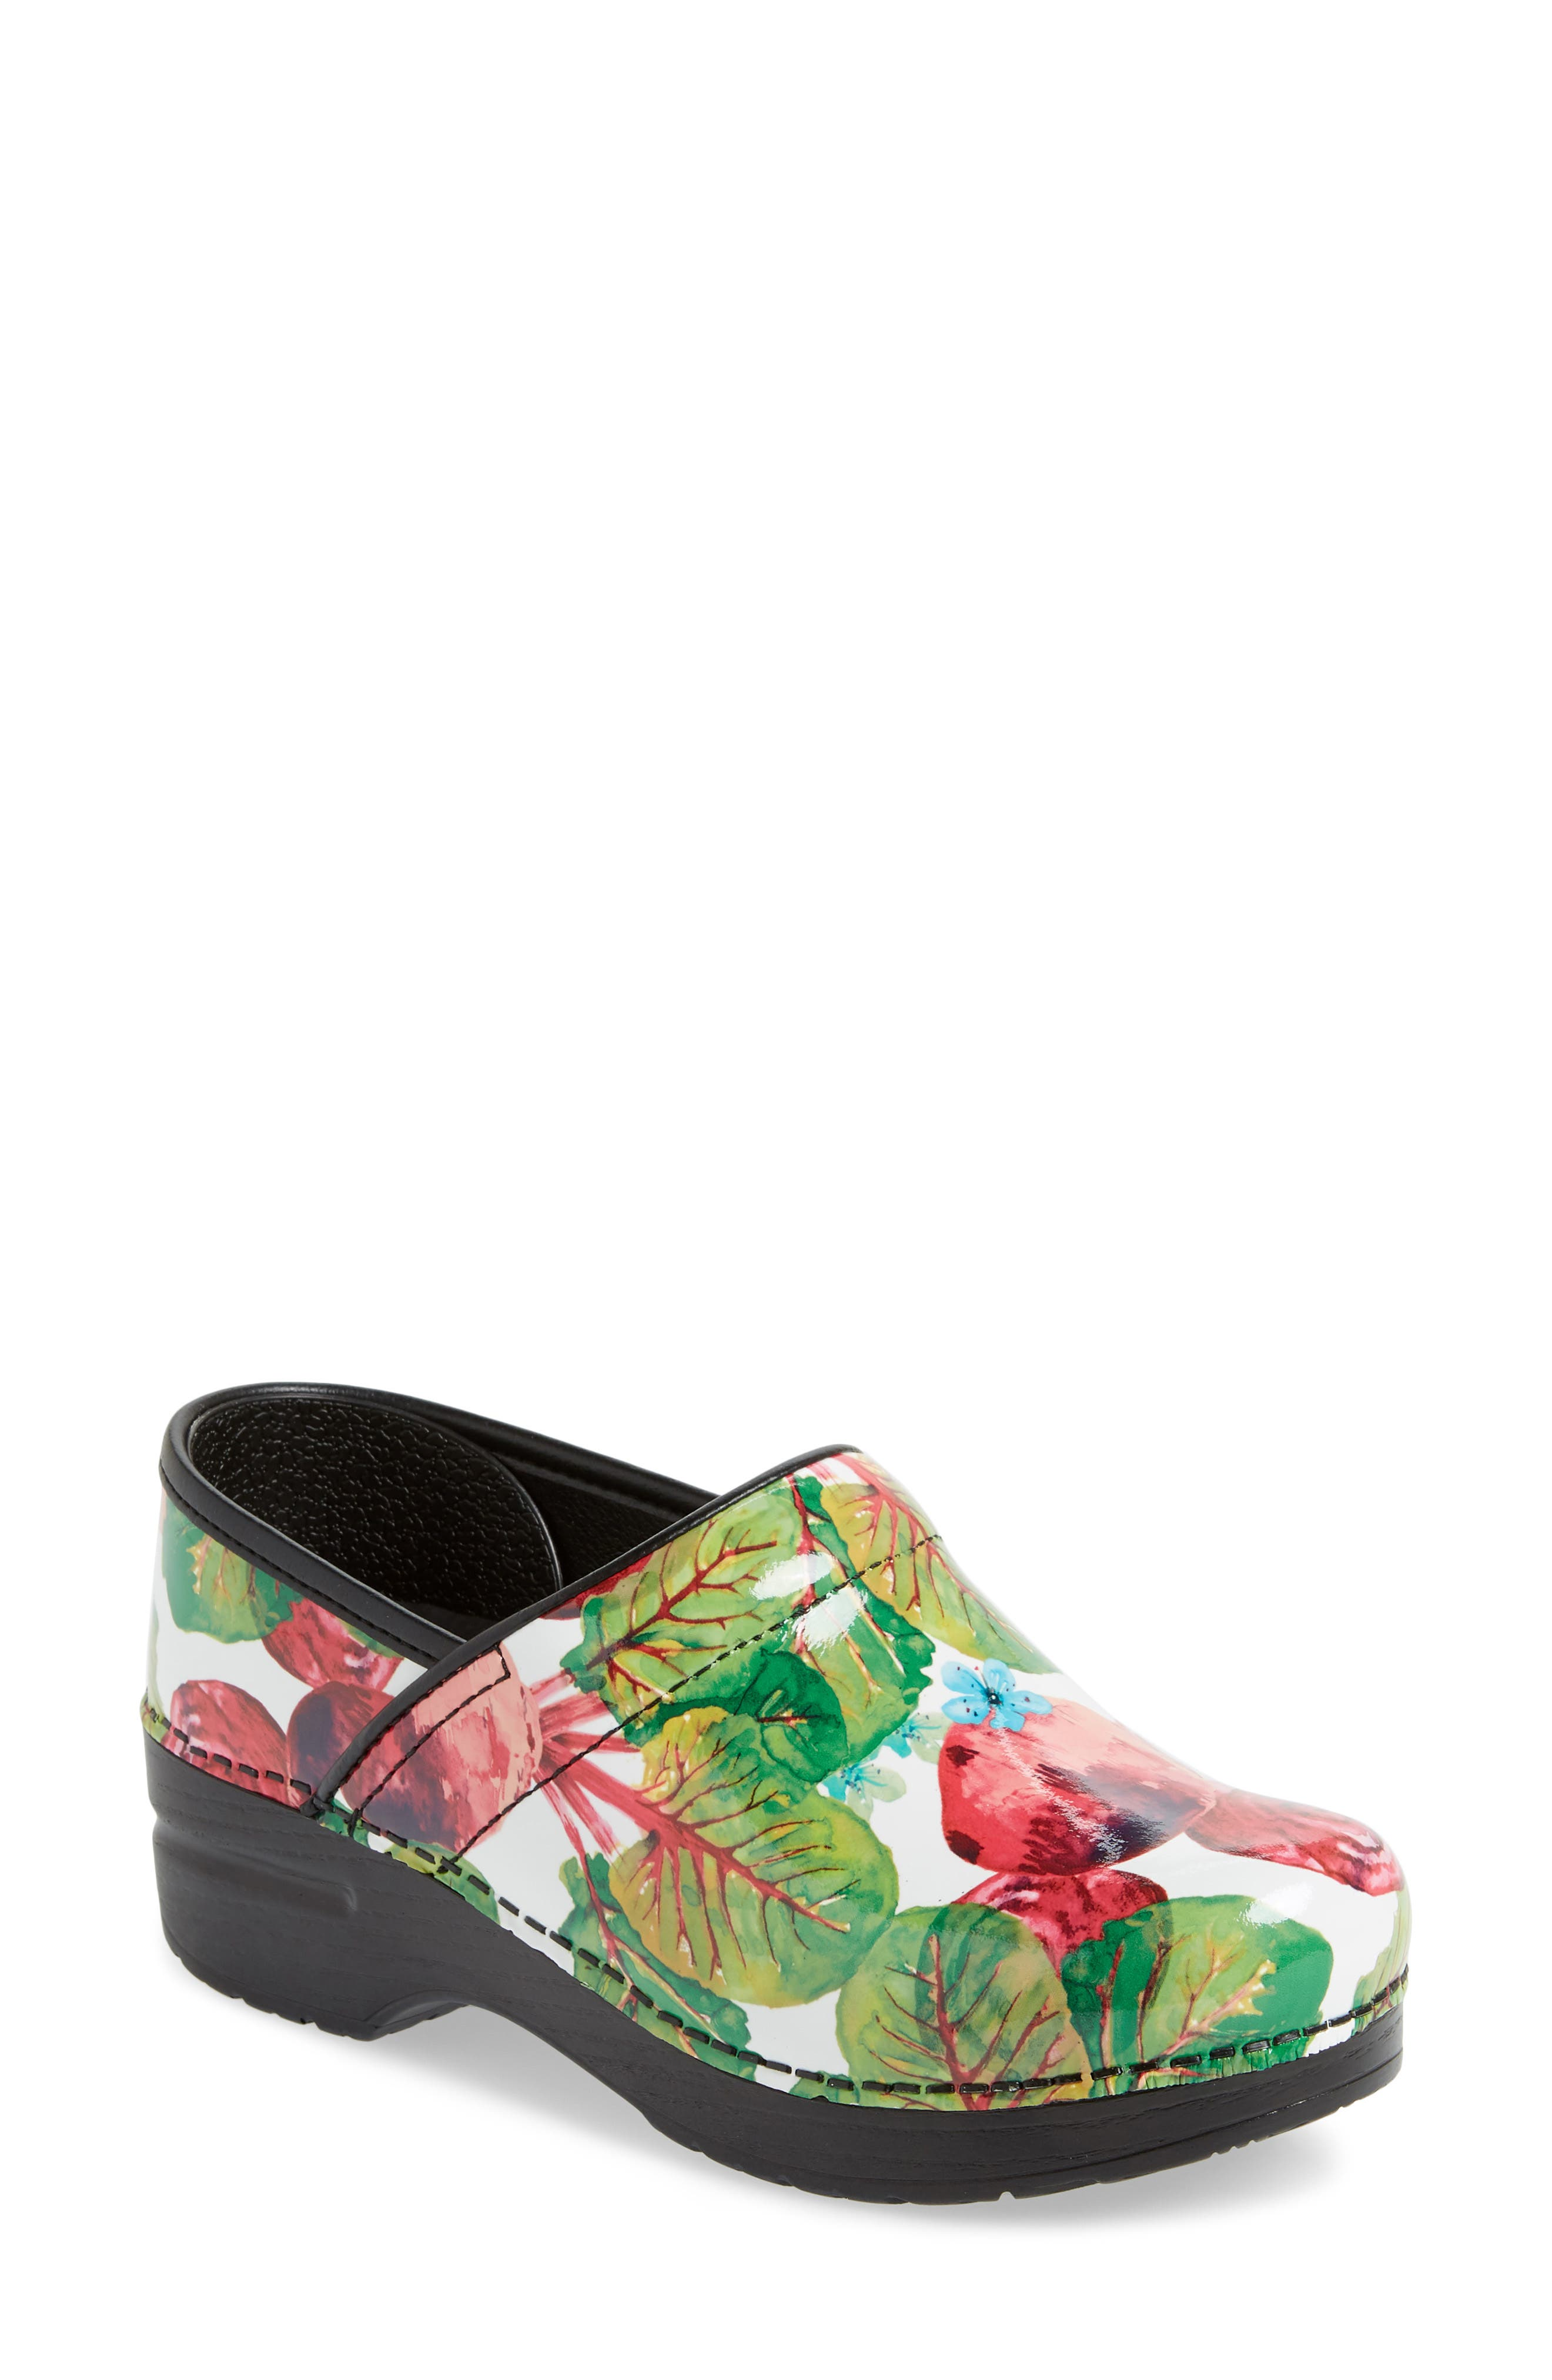 'Professional' Clog,                         Main,                         color, BEETS PATENT LEATHER